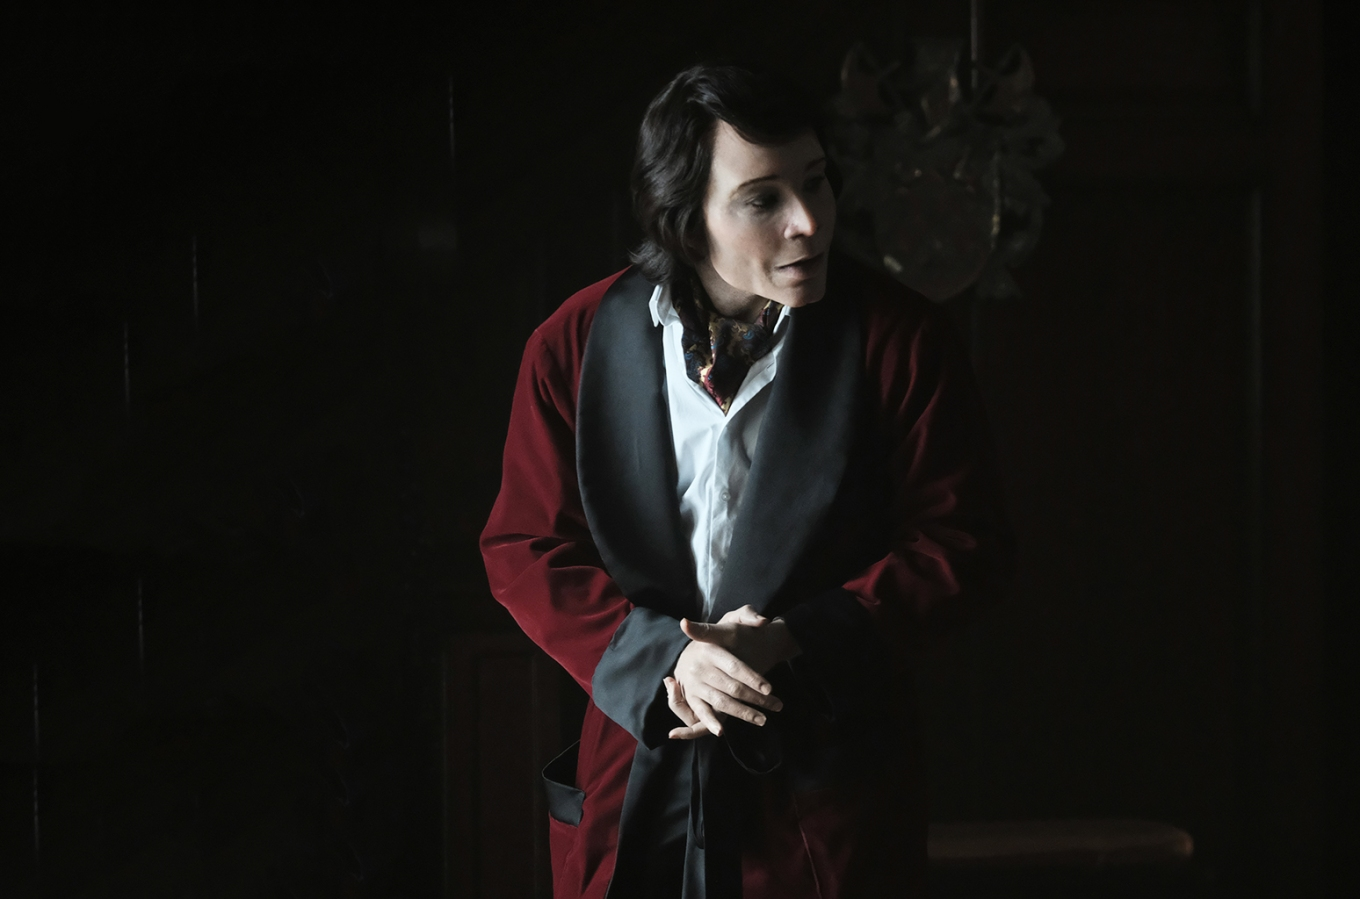 atlanta-teddy-perkins-2018-billboard-1548.jpg